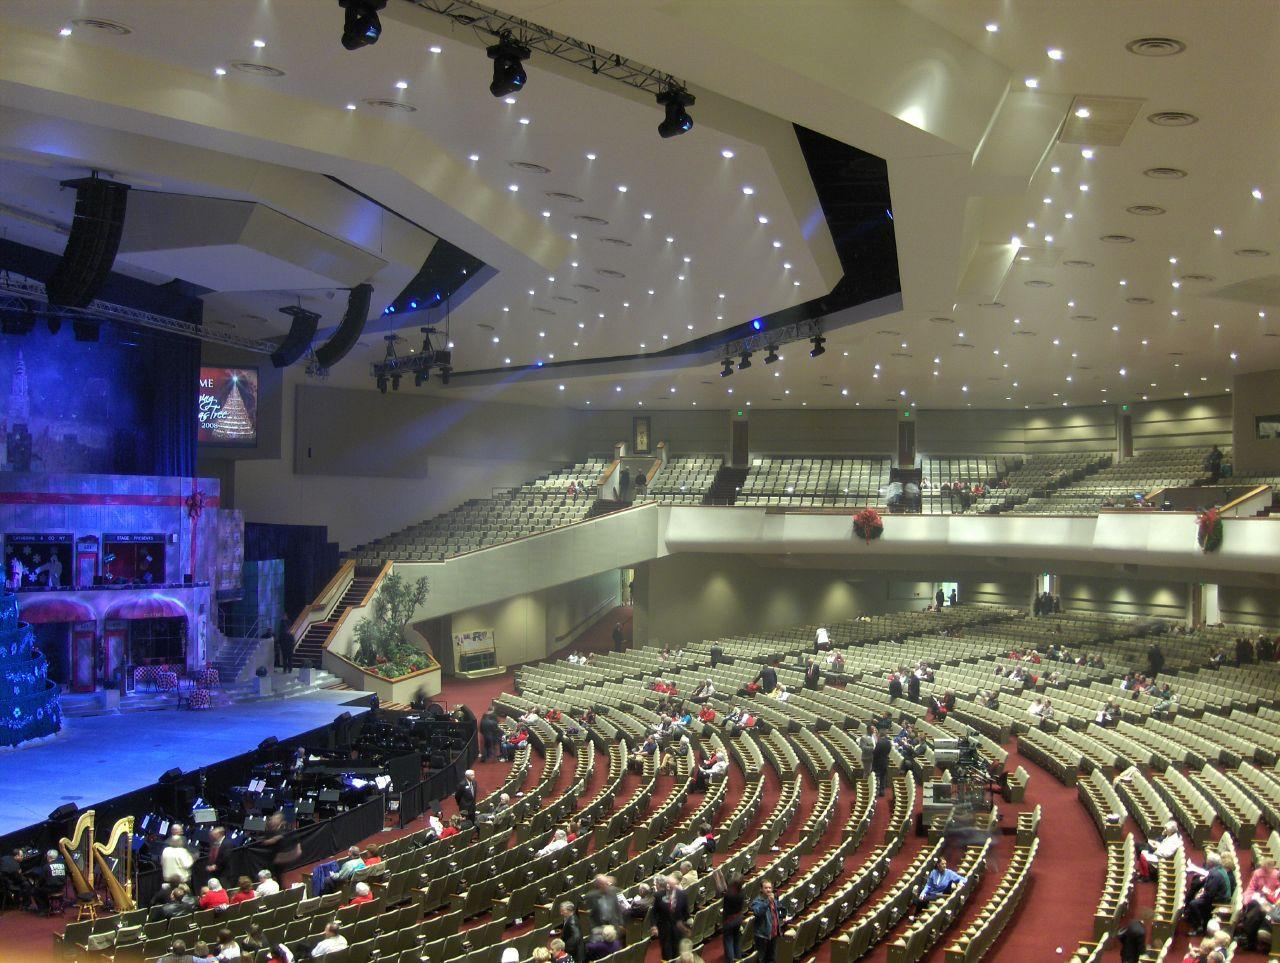 space at Bellevue Baptist Church